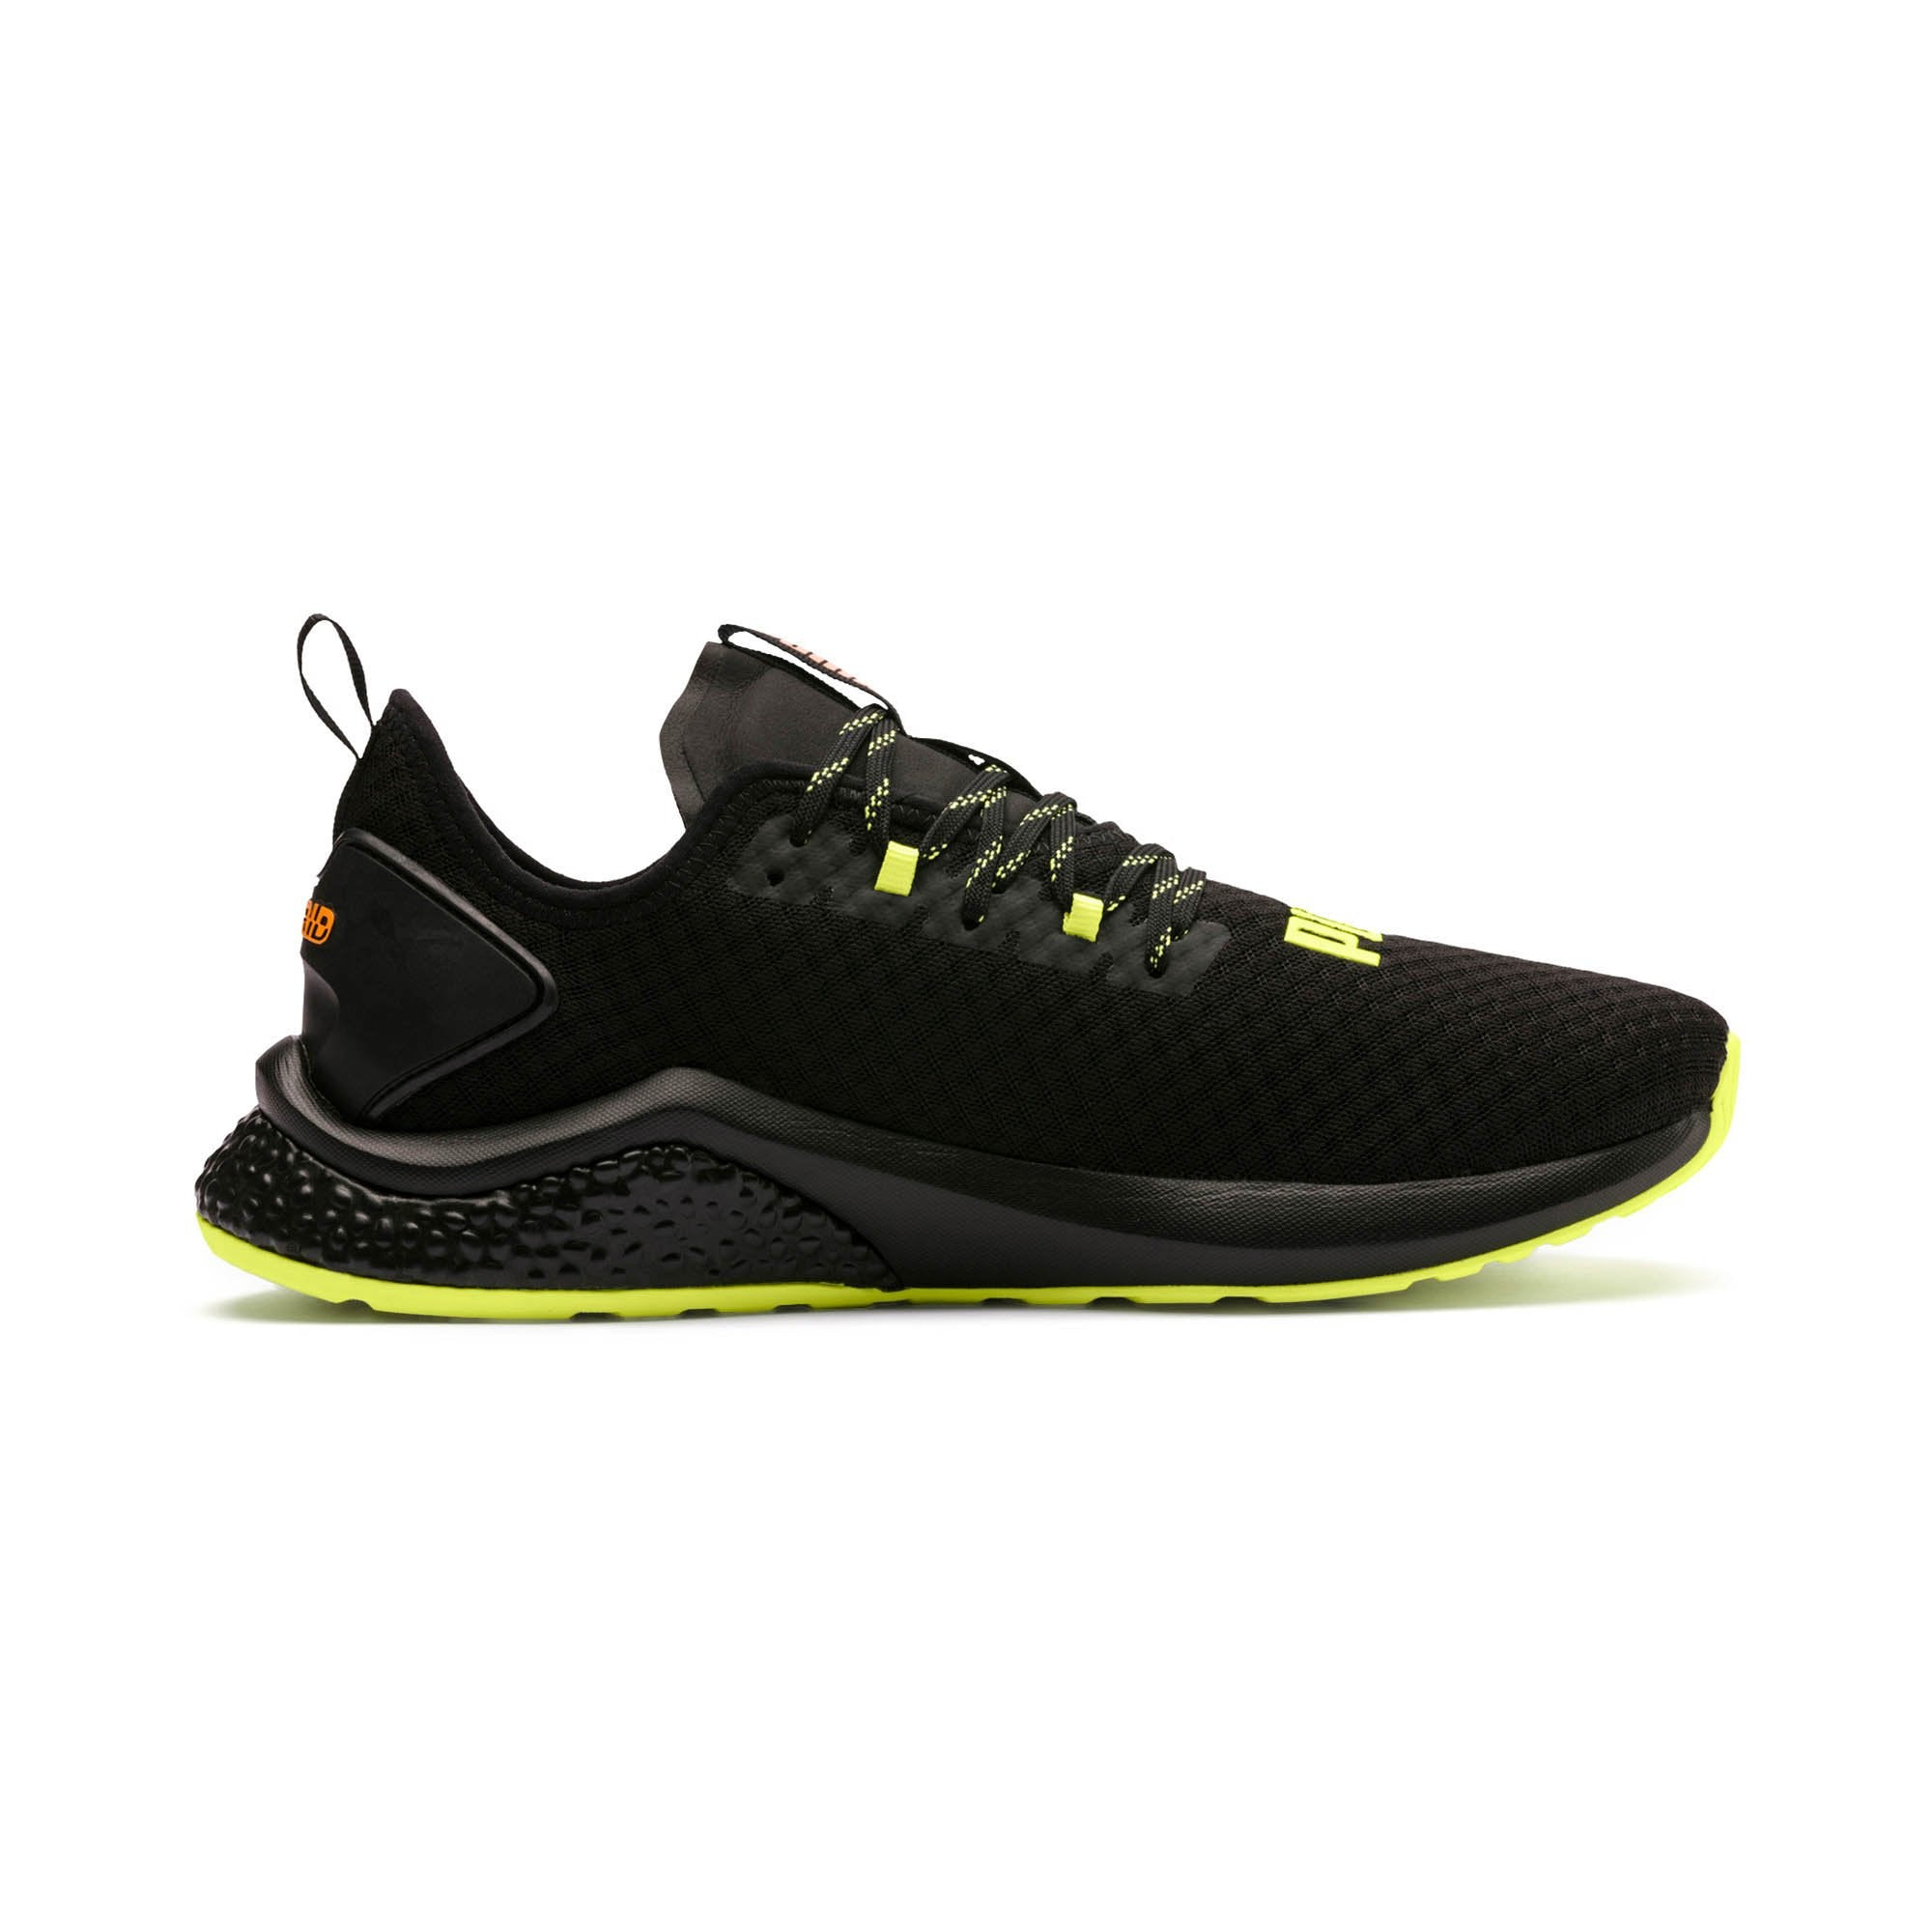 best online sites for running shoes